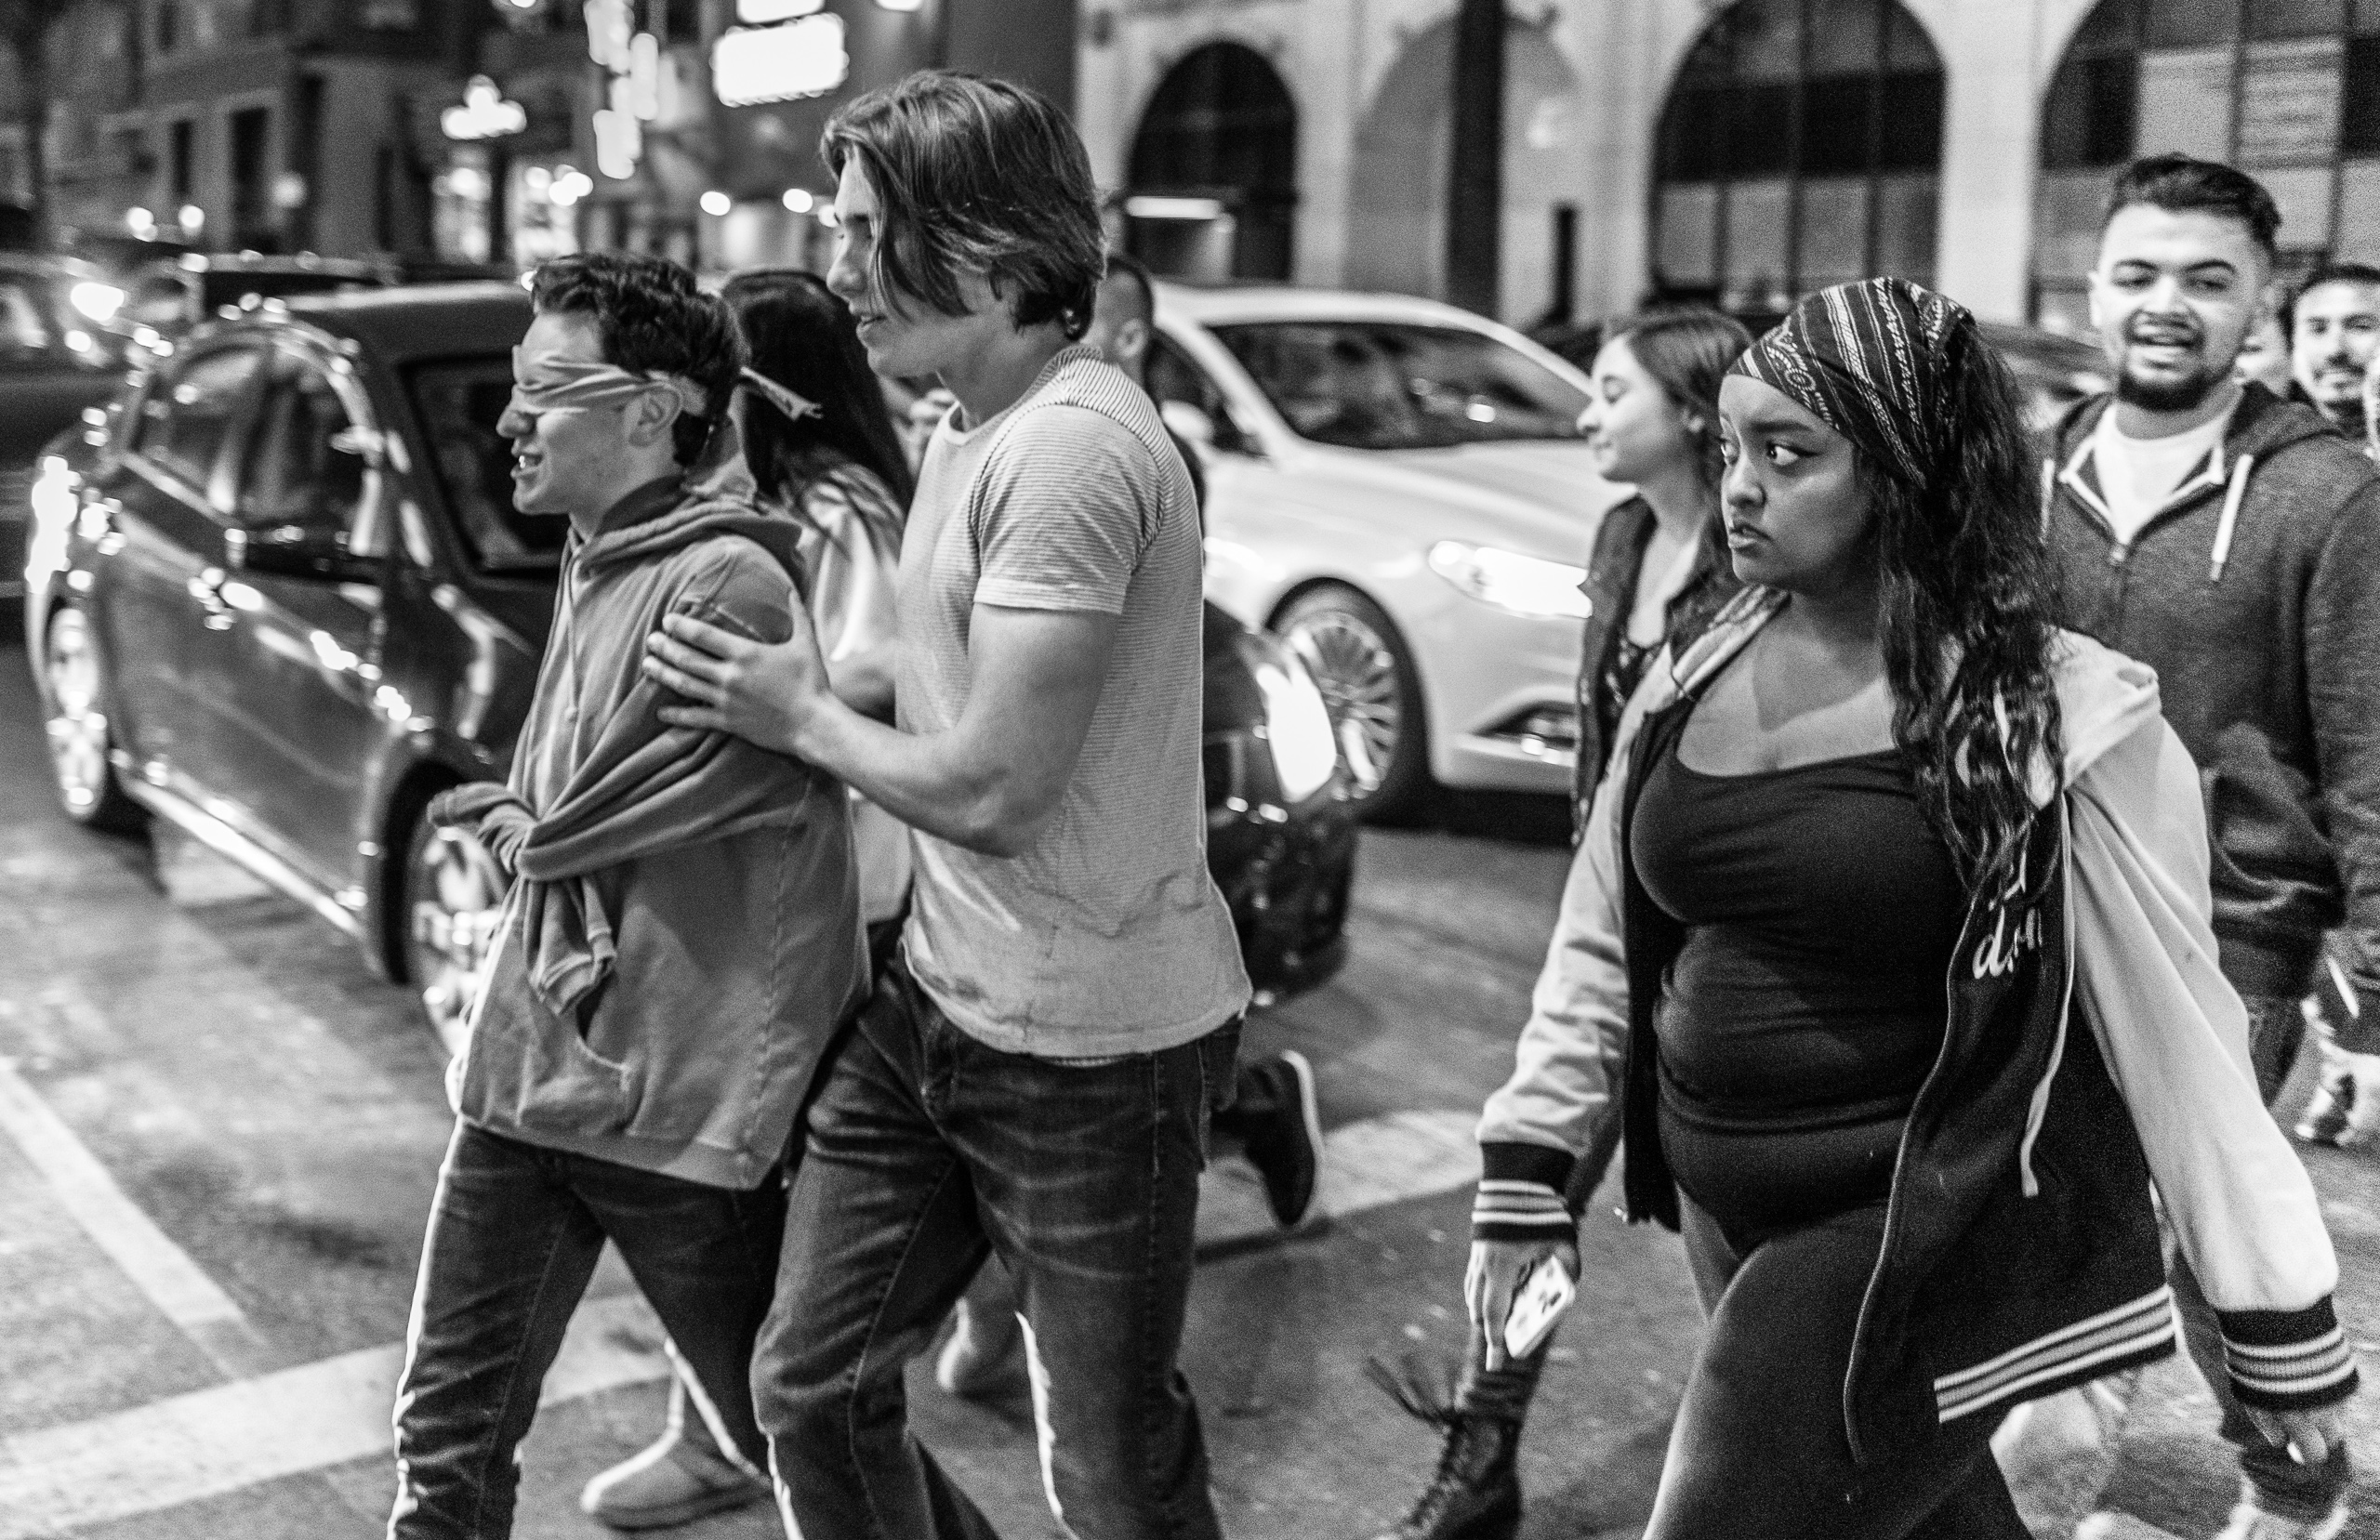 a young, blindfolded guy is escorted across the street as other pedestrians look on